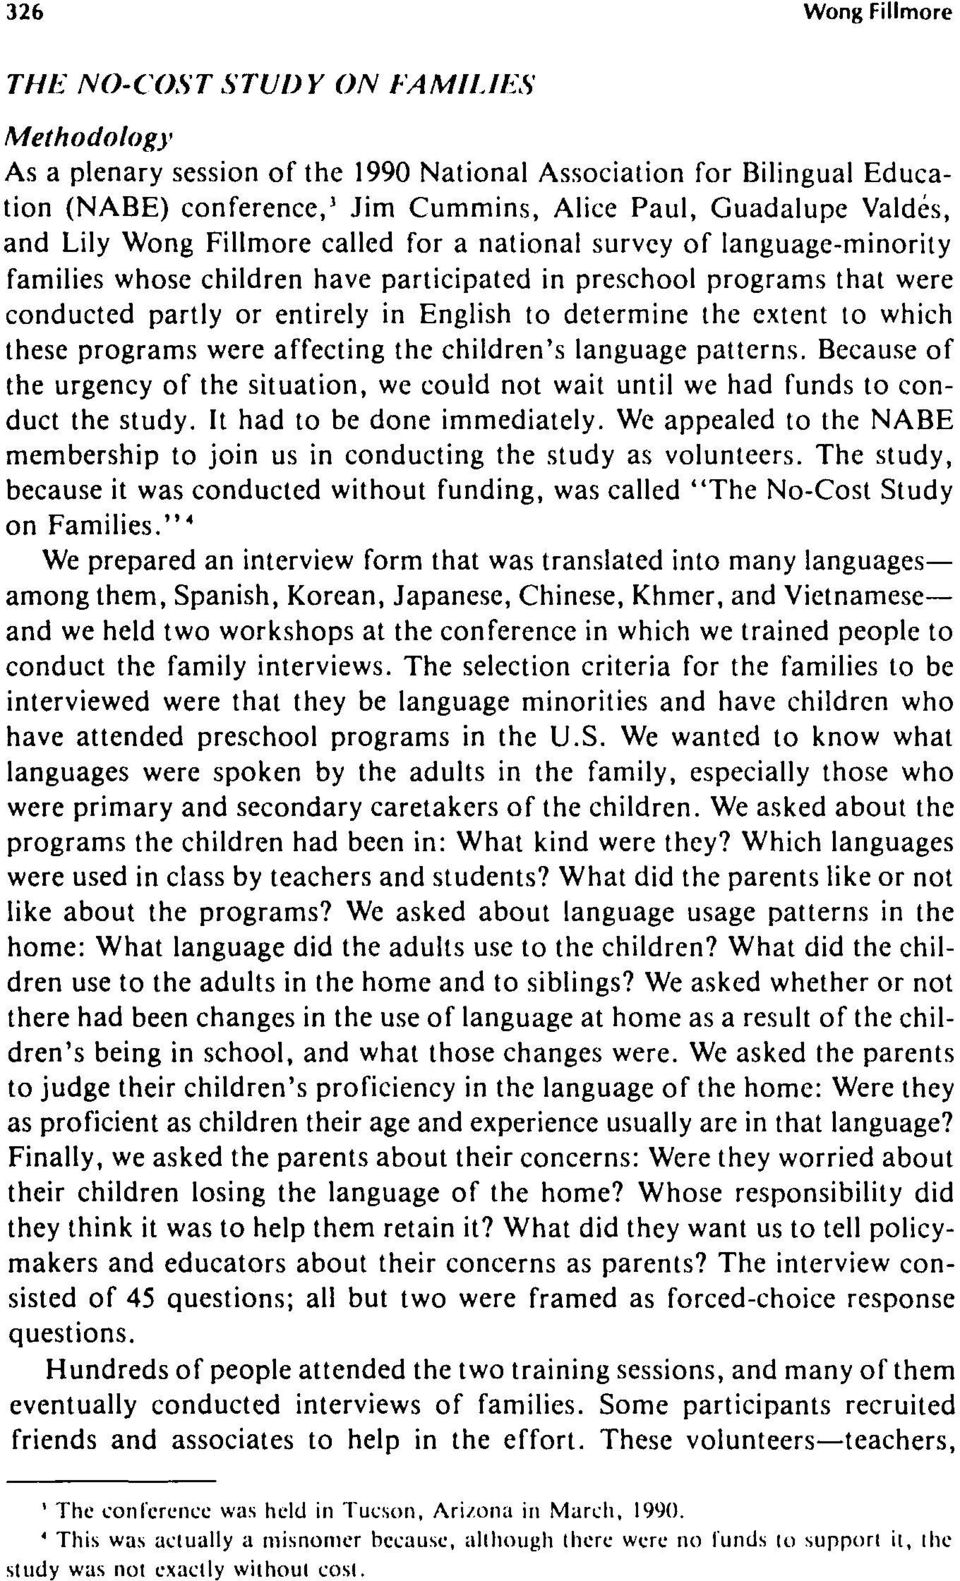 determine the extent to which these programs were affecting the children's language patterns. Because of the urgency of the situation, we could not wait until we had funds to conduct the study.